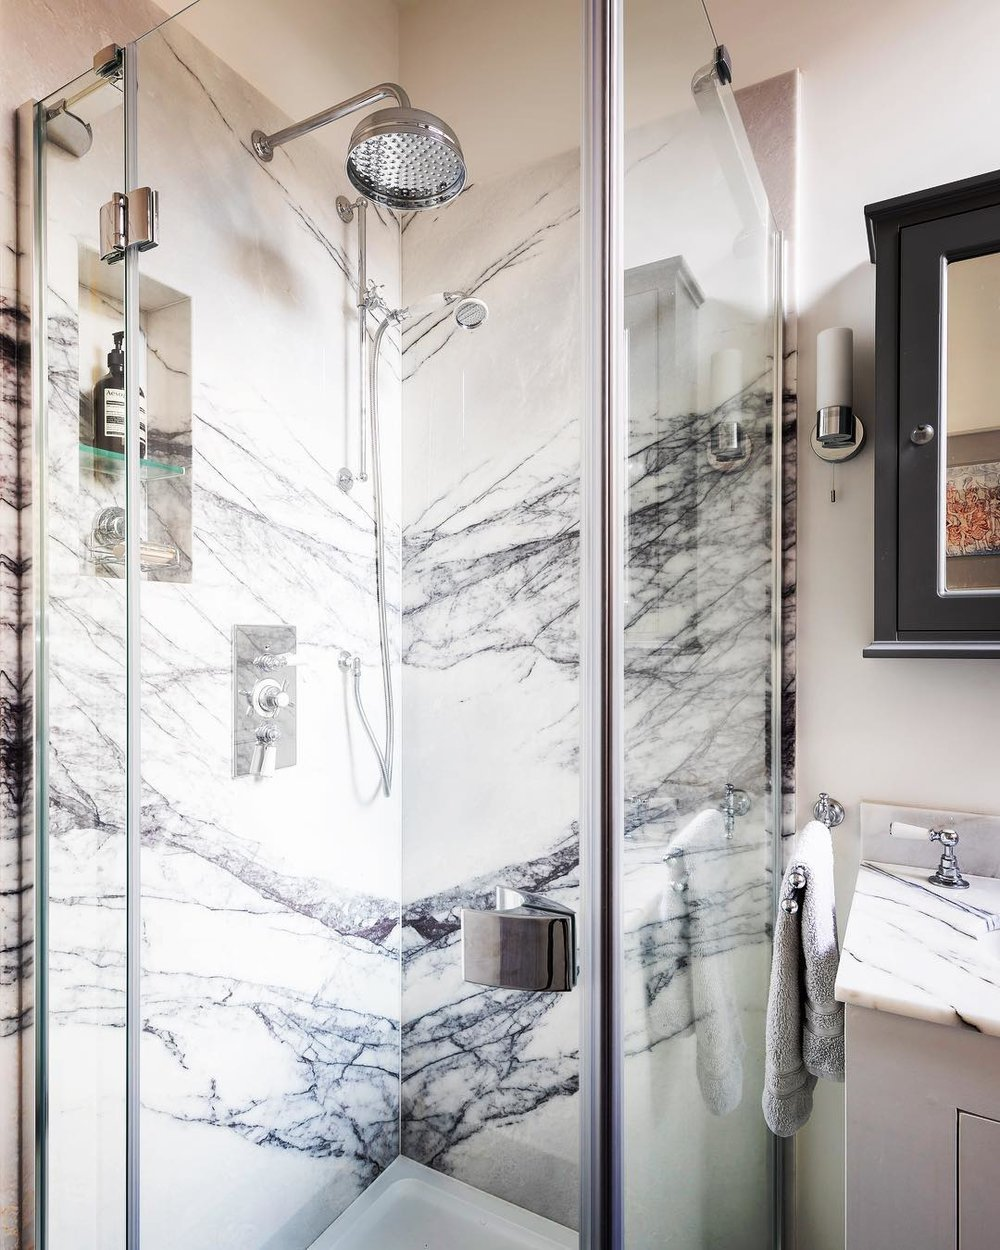 lefroy brooks traditional shower trim with lever handles and rainhead in polished chrome - the ultimate guide to luxury plumbing by the delight of design